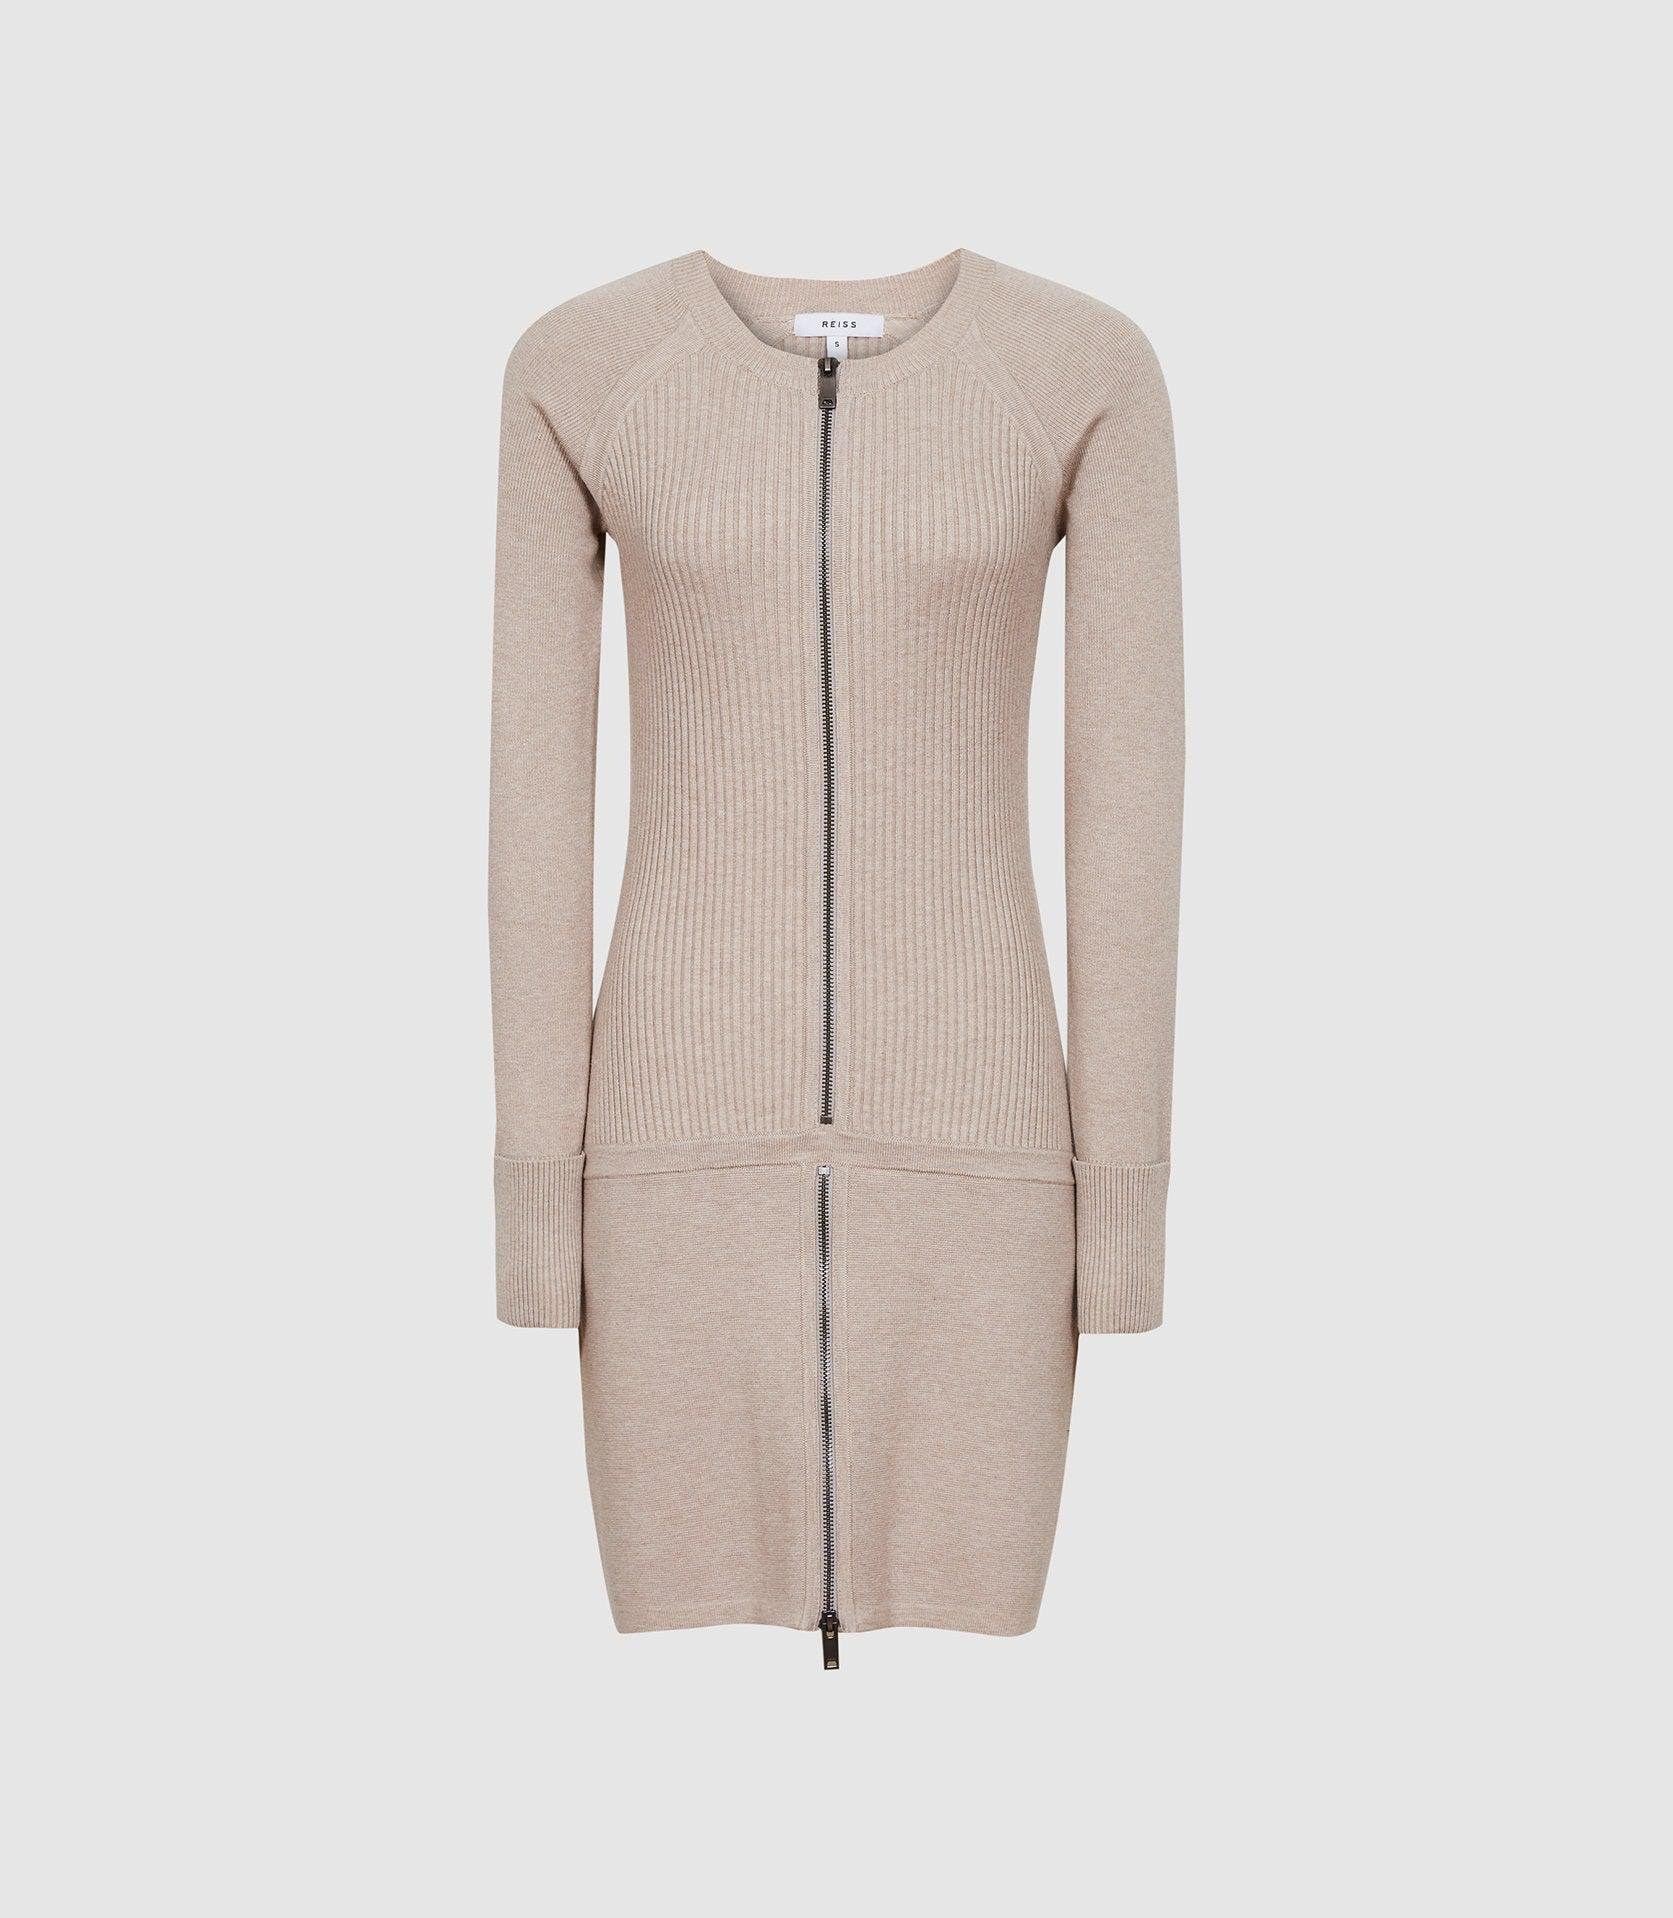 ASHLEIGH - KNITTED BODYCON DRESS WITH ZIP DETAIL 4